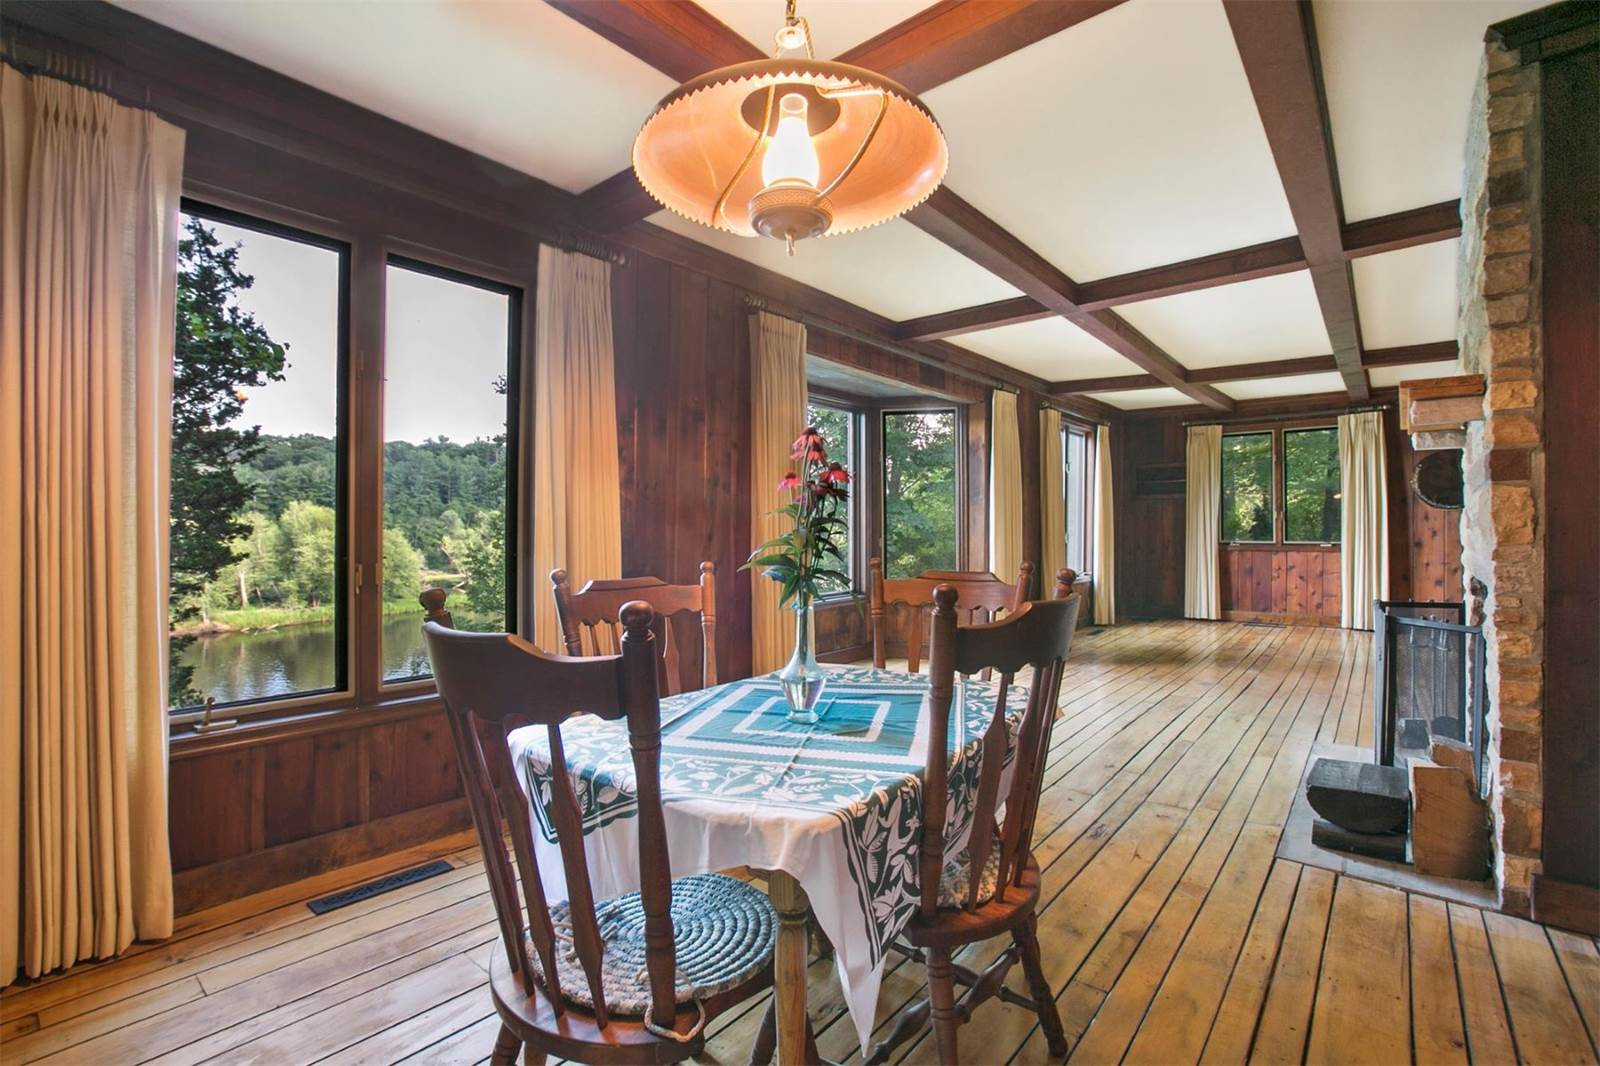 150 Square Feet Room Charming Storybook Cottage By The River Wants 795k Curbed